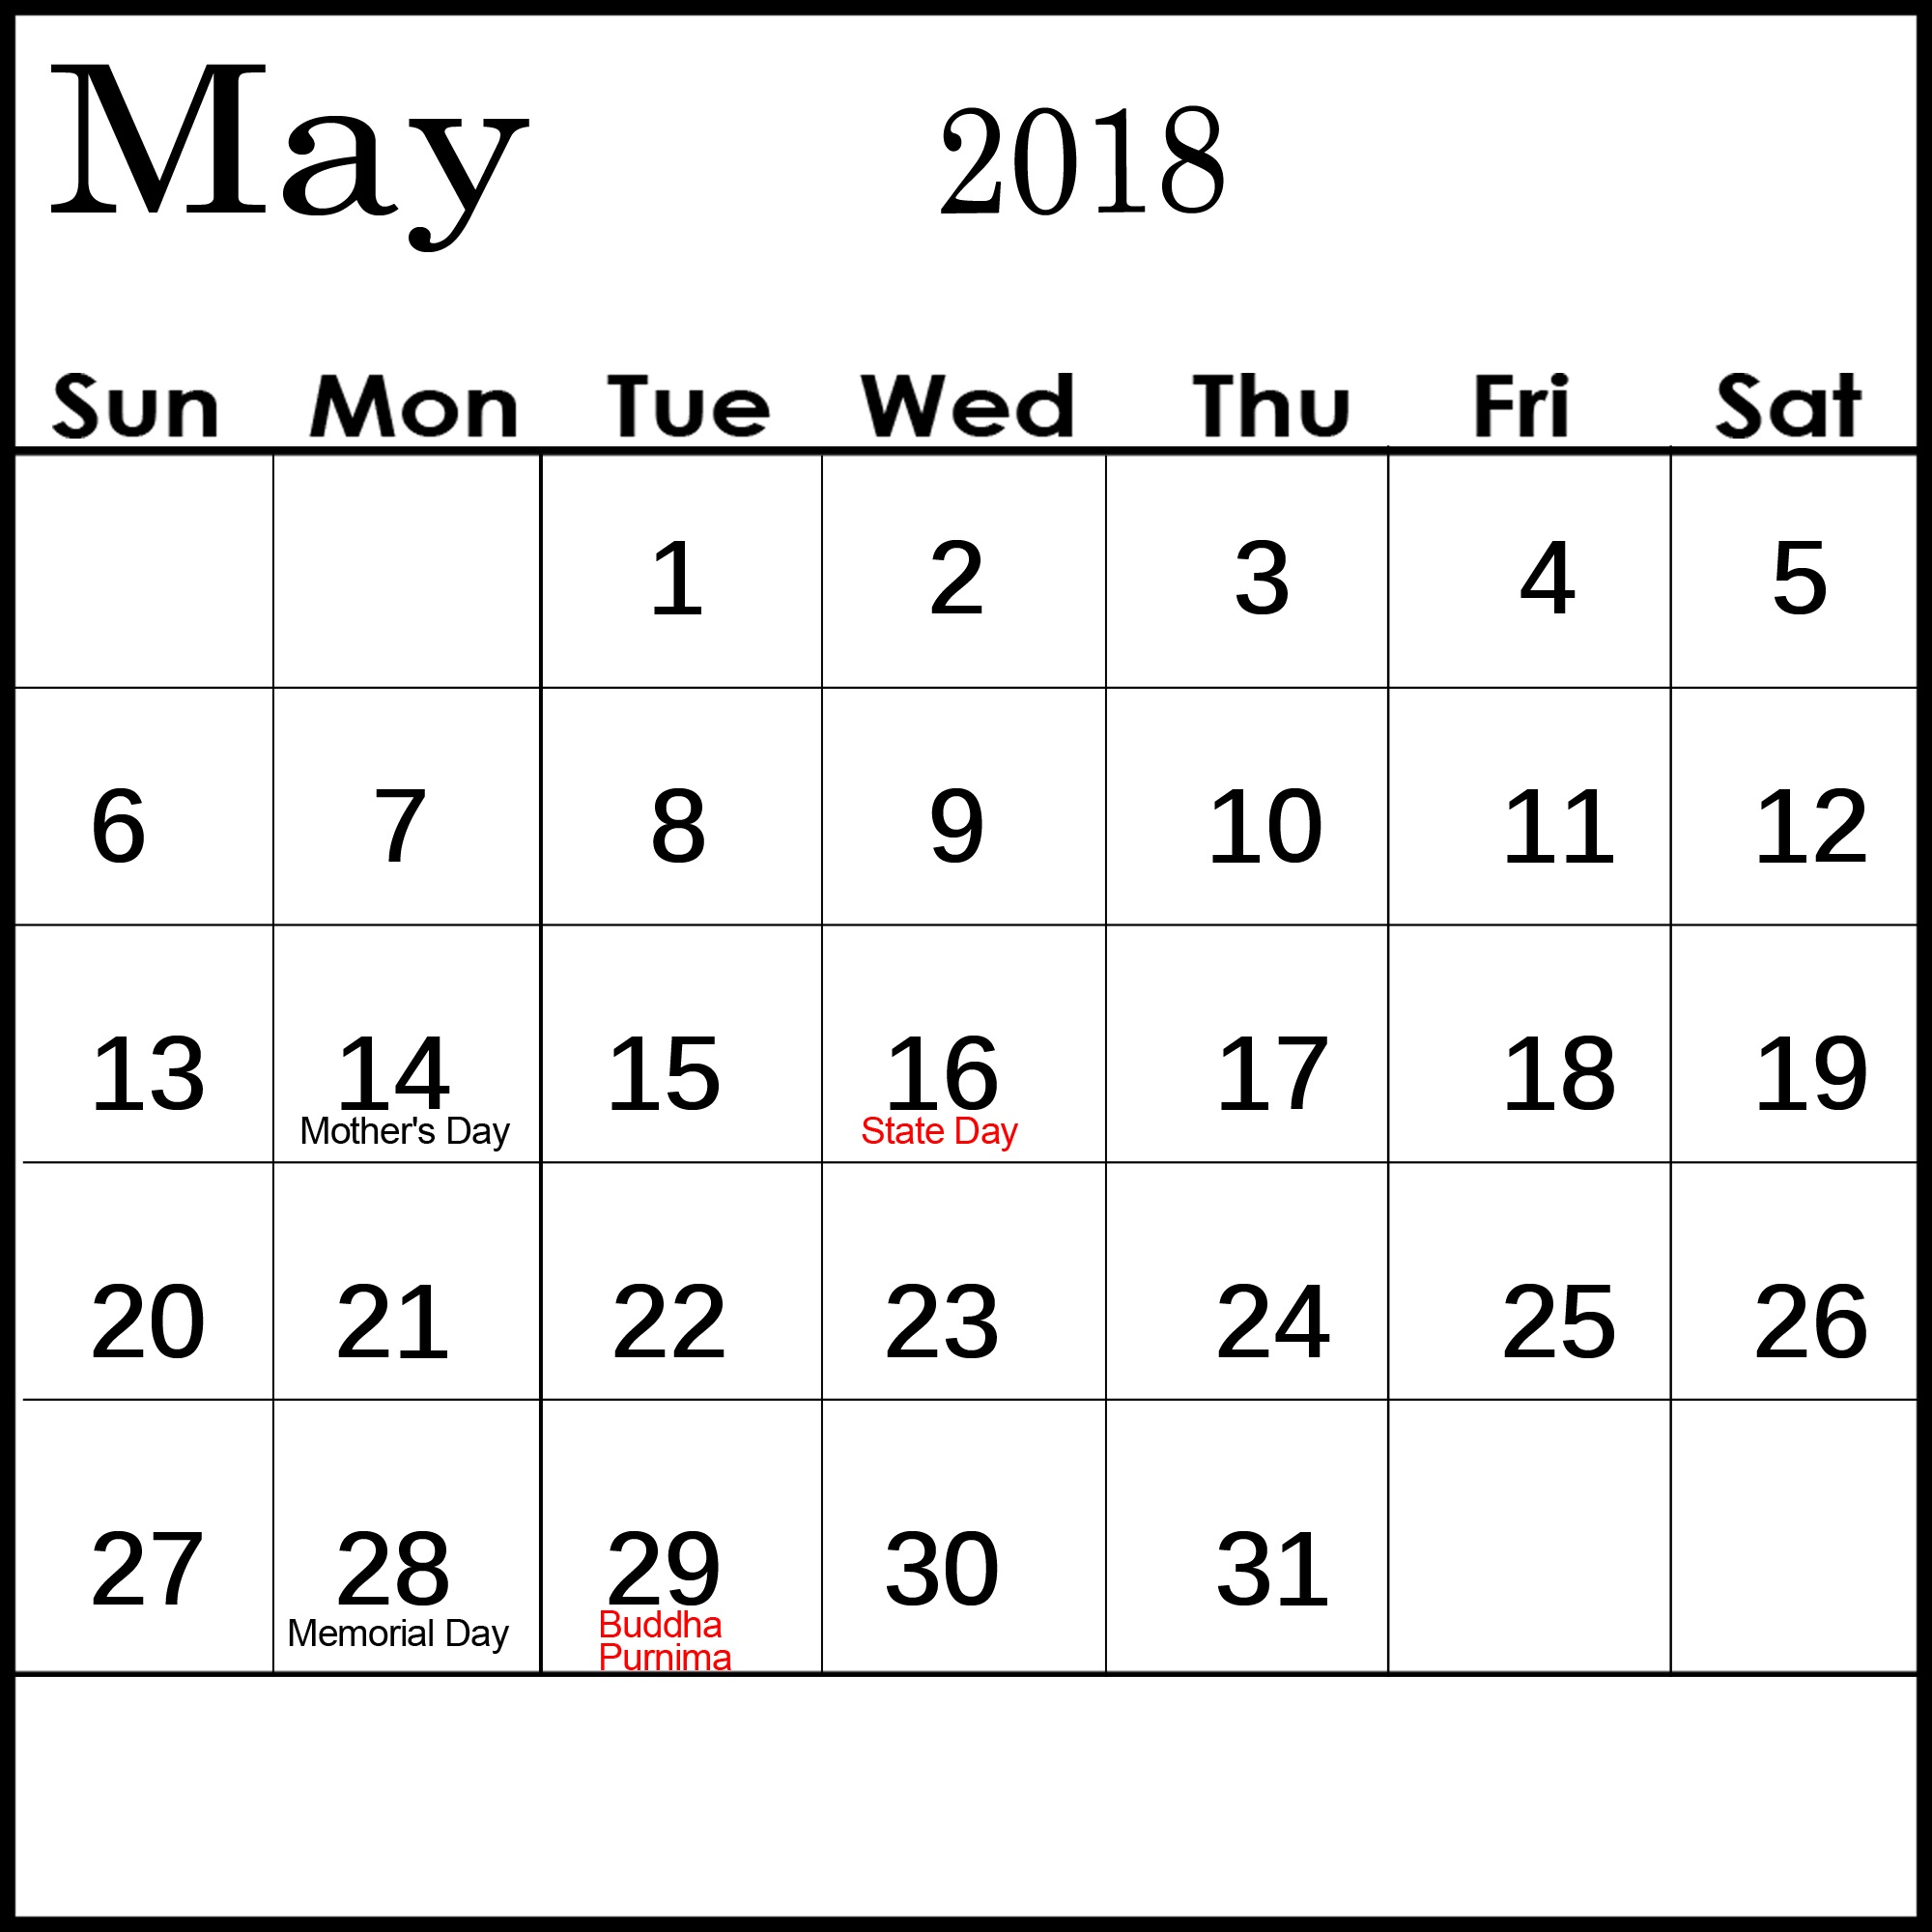 May Calendar For 2018 With Holidays